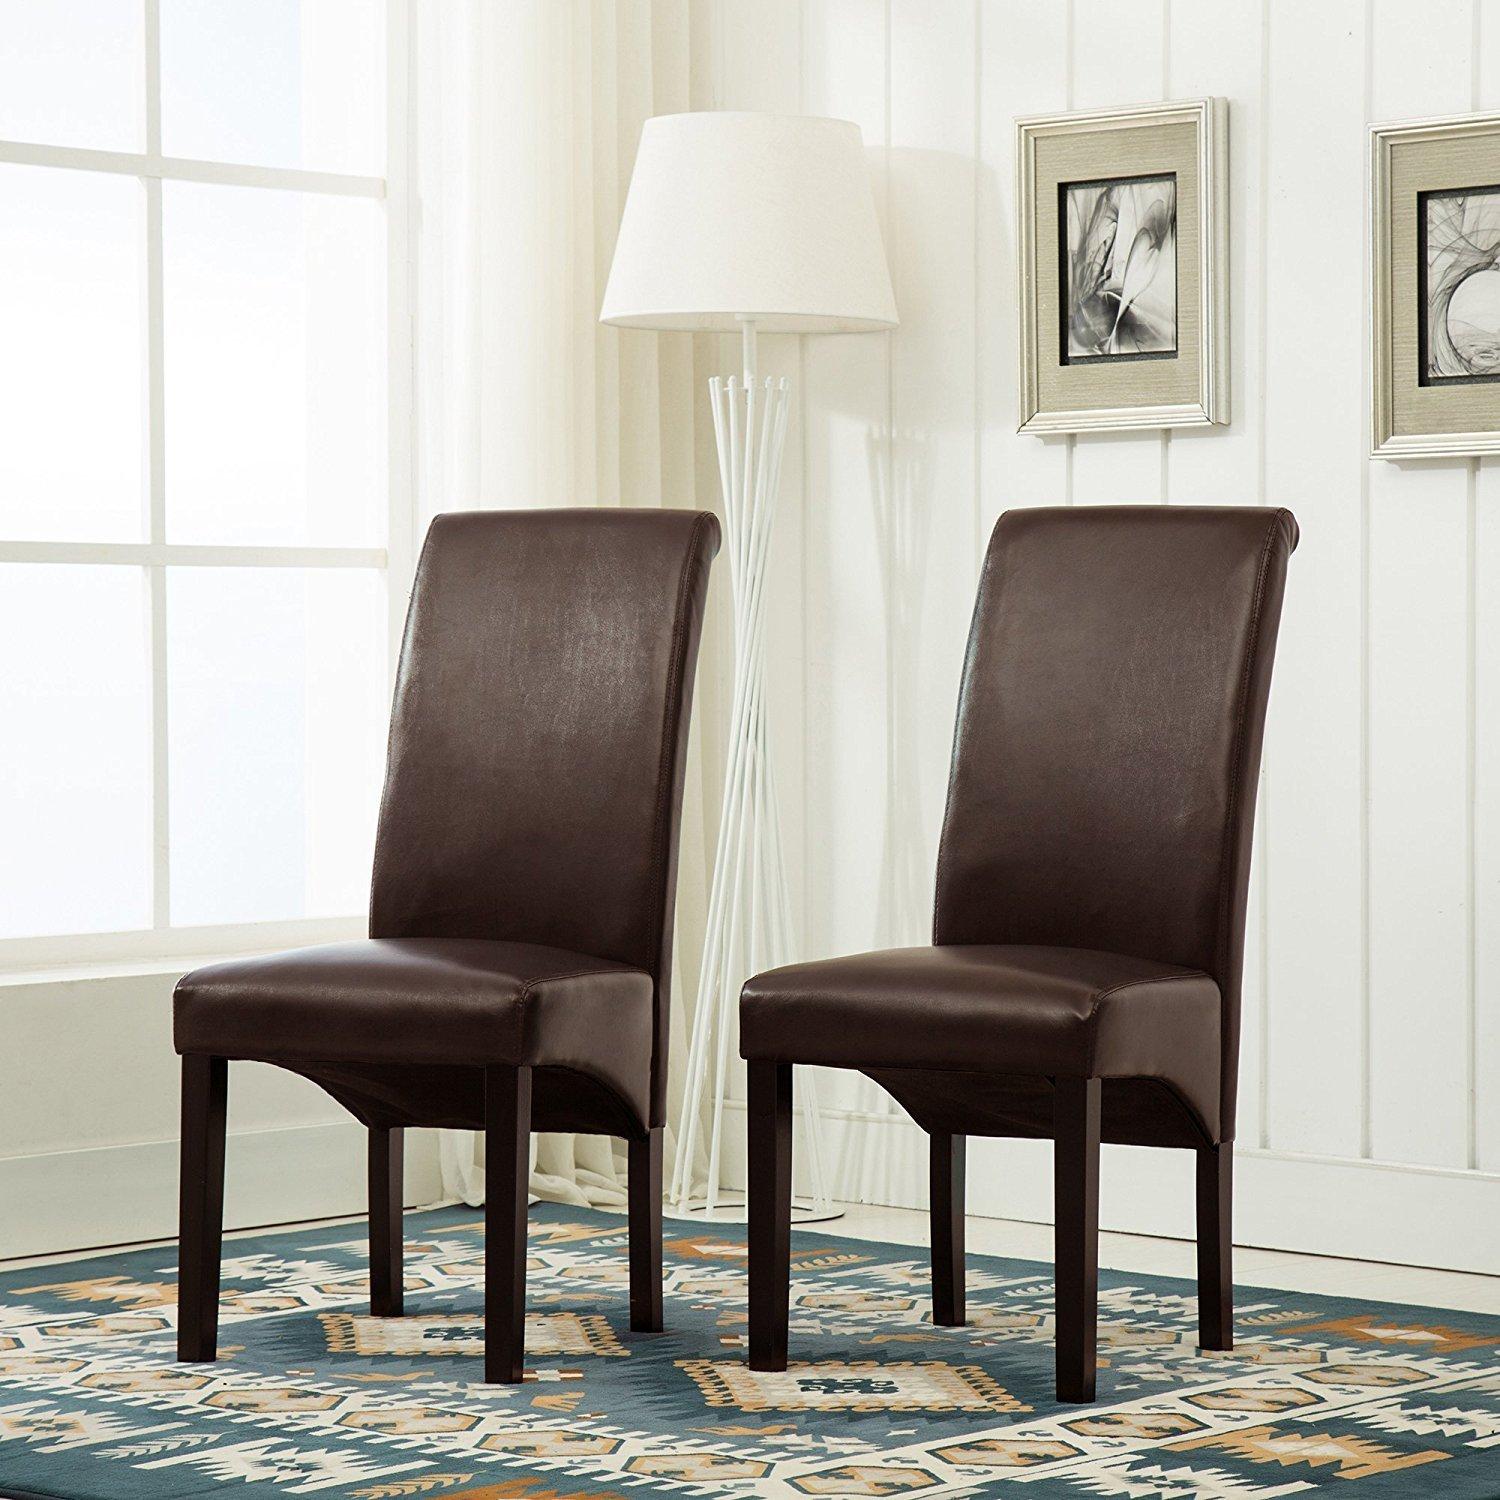 Faux Leather Roll Top Scroll High Back Dining Chairs Wood Legs Furniture Set New